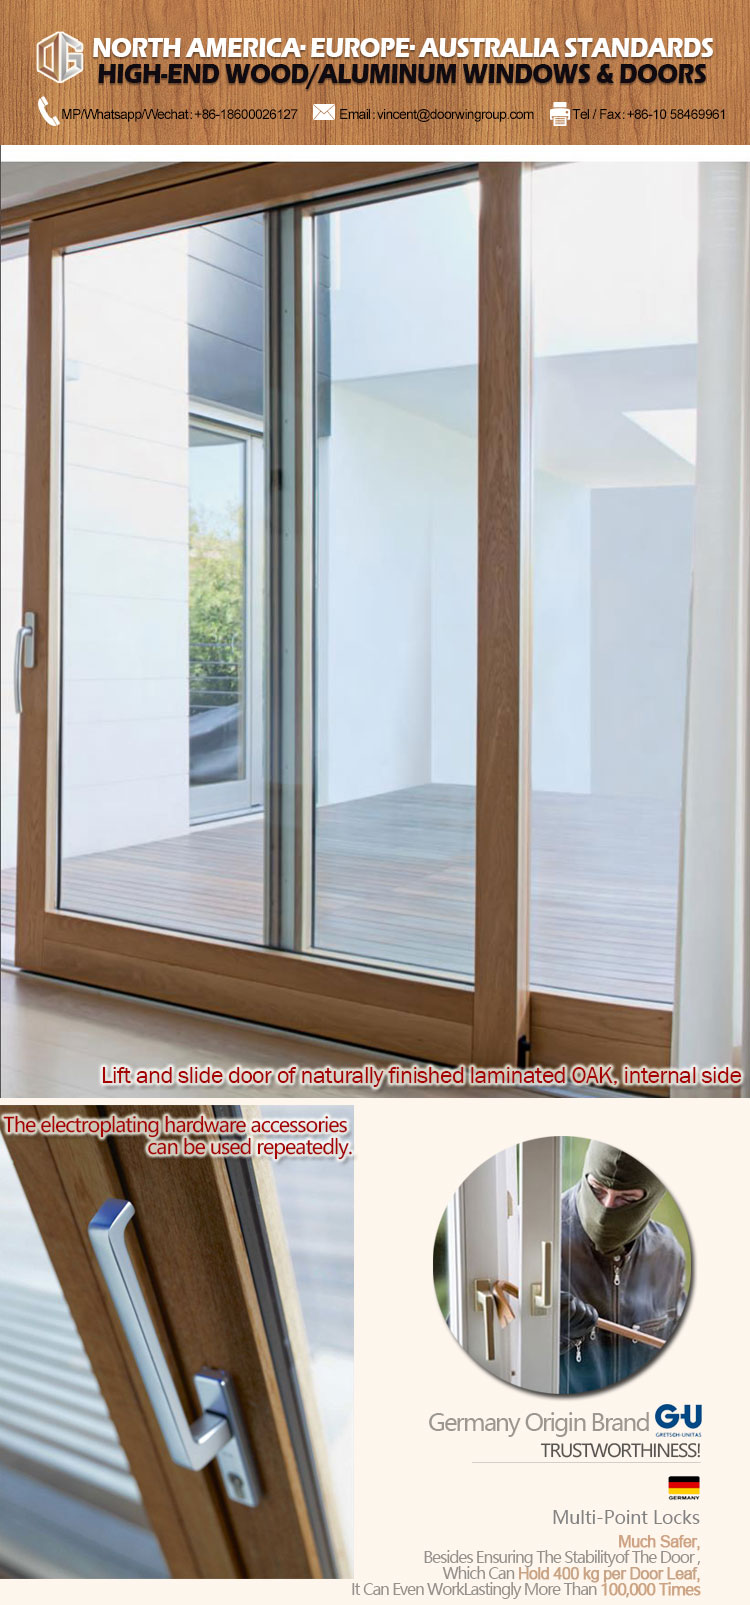 High quality exterior sliding patio doors internal blinds door with built in shade